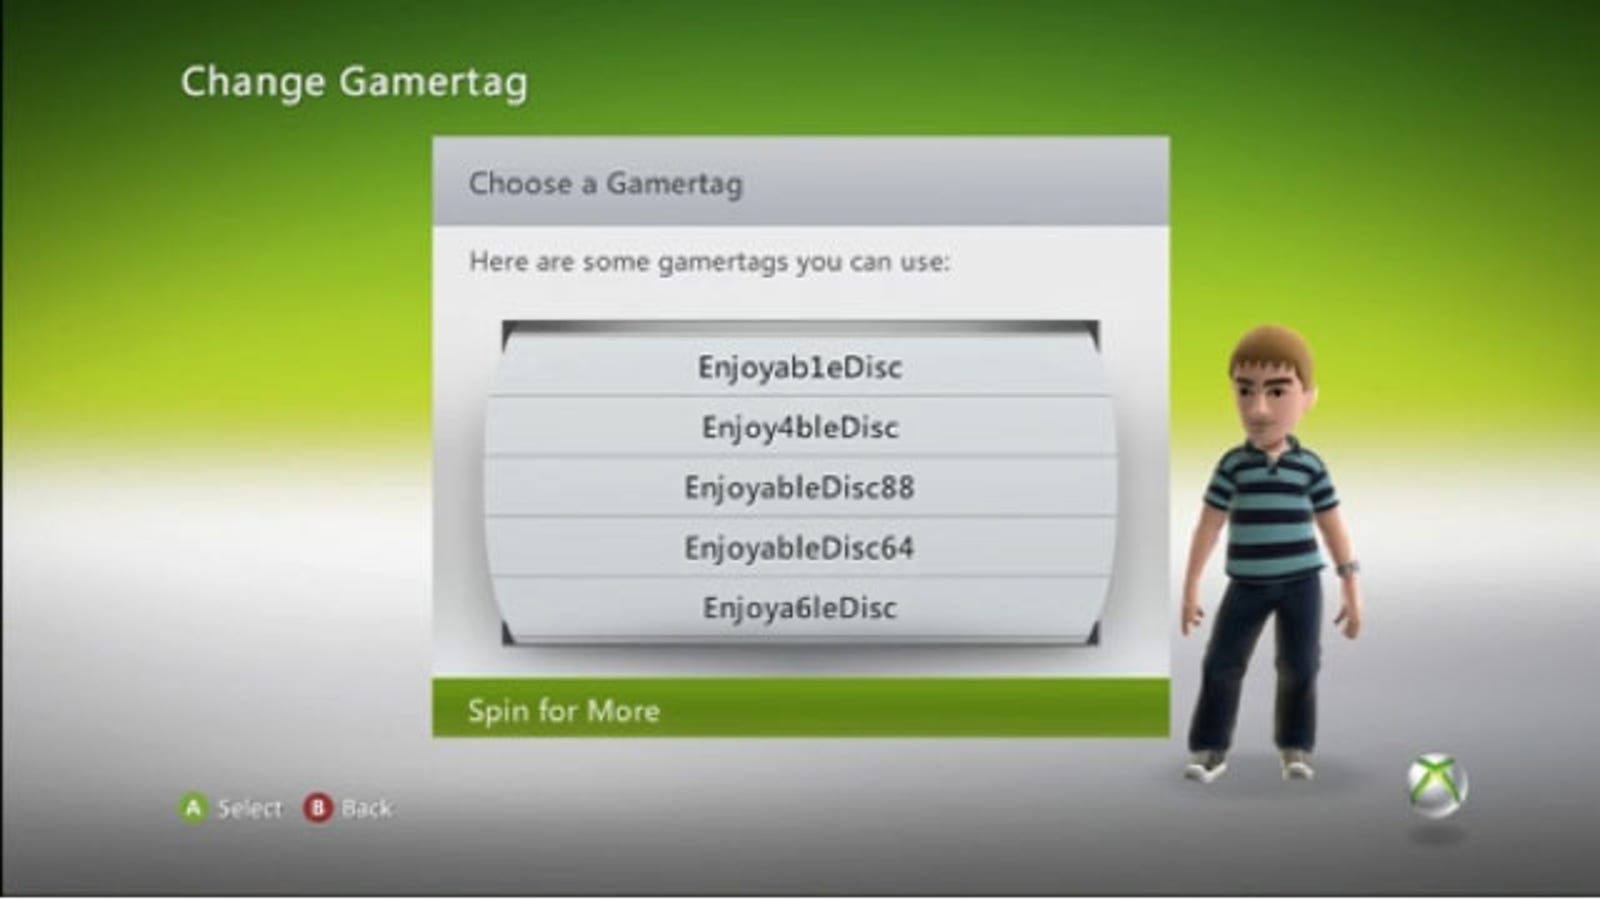 Awesome names for gamertags